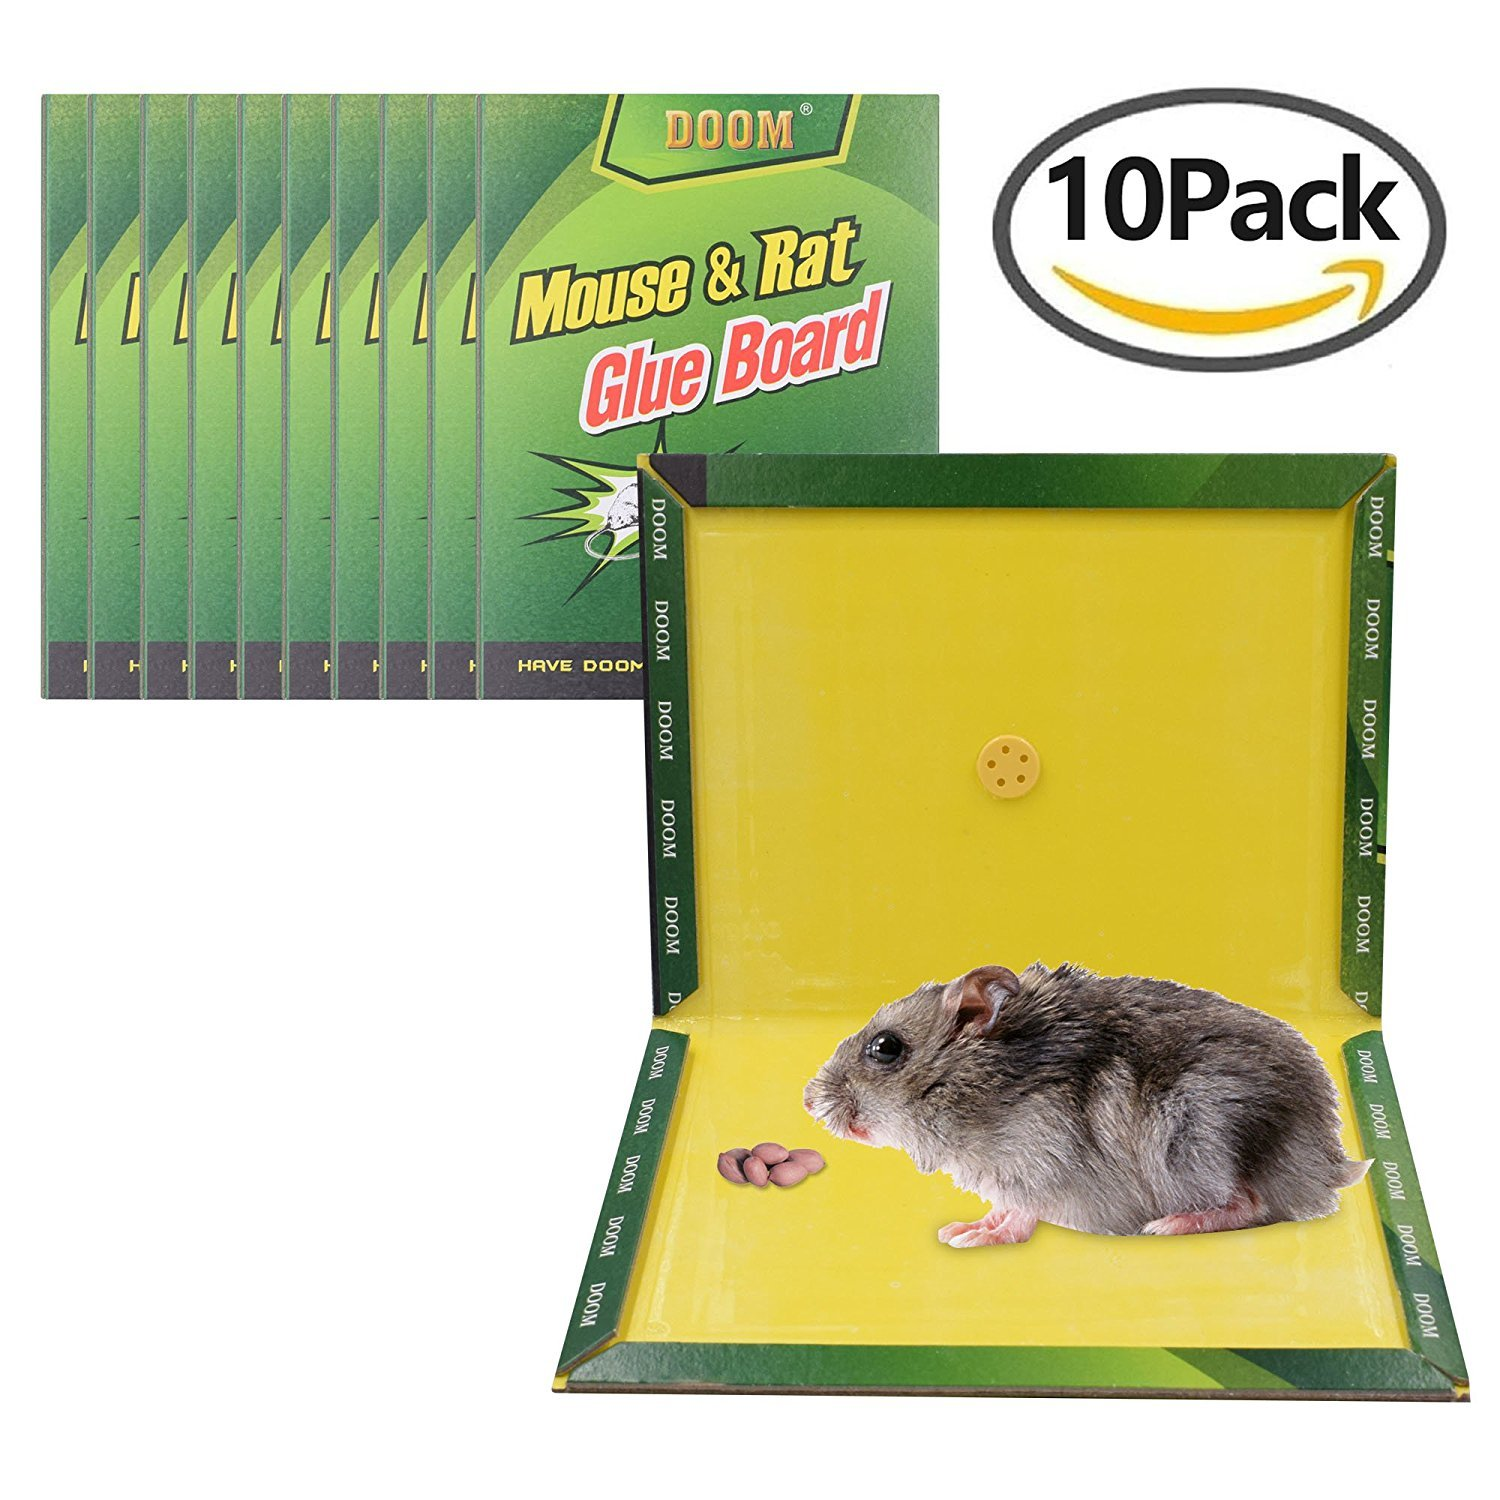 Mouse Trap,Mouse Rat Glue Boards,(10-Pack) Mouse Glue Traps,Mouse Size Glue Traps Sticky Boards Mouse Catcher Mice Professional Strength Glue Insect Lizard Spider Cockroach Rodent Snake Strongly